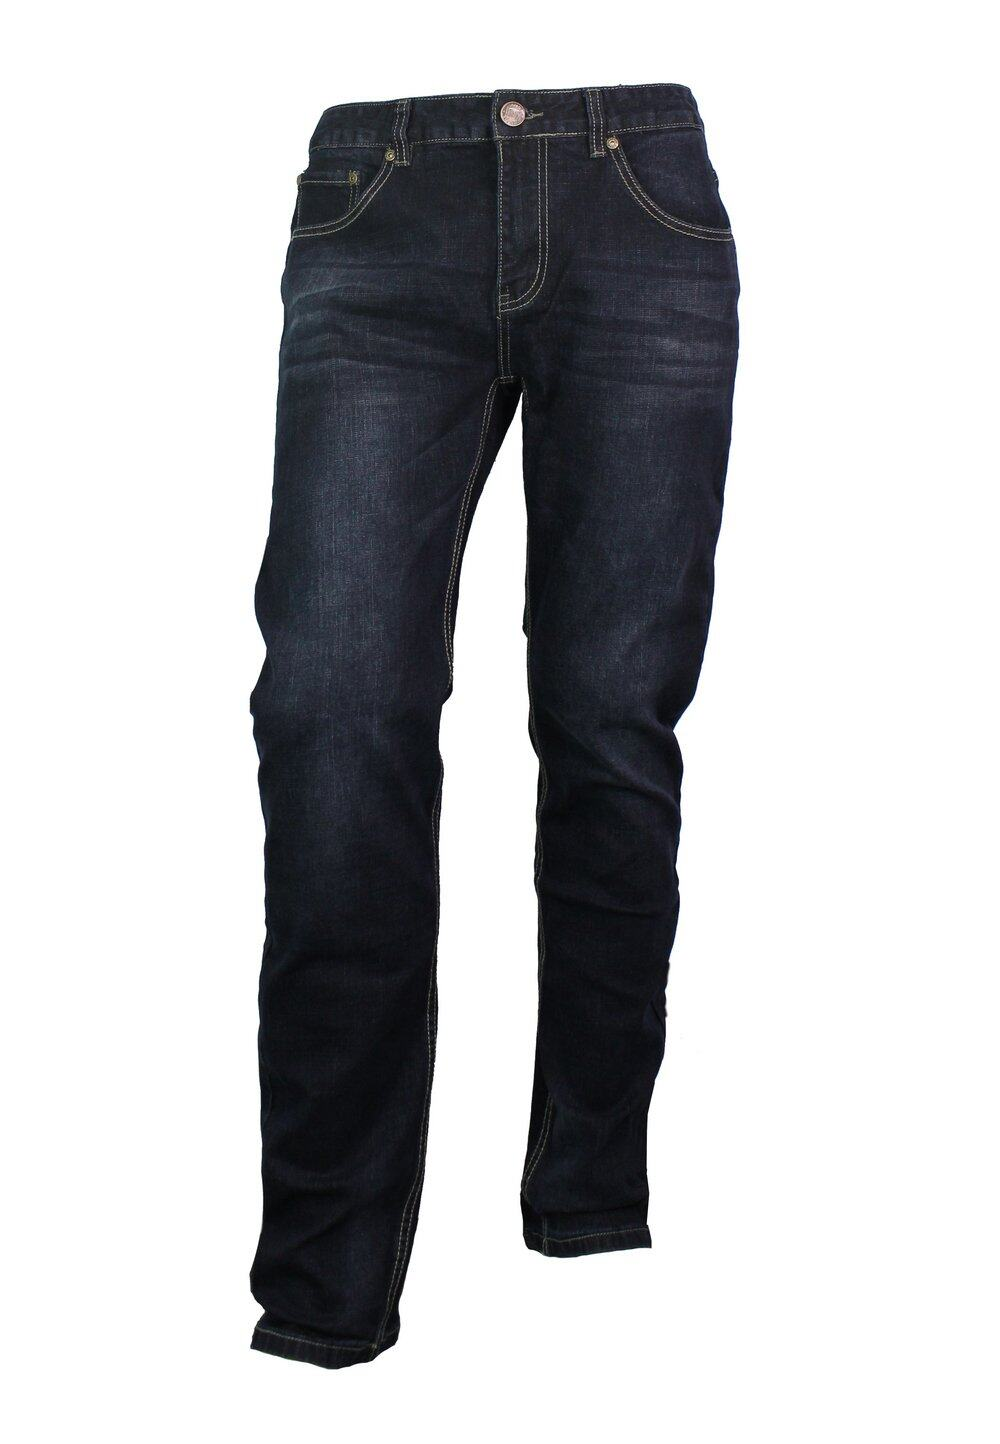 Exhaust Slim Fit Jeans 989